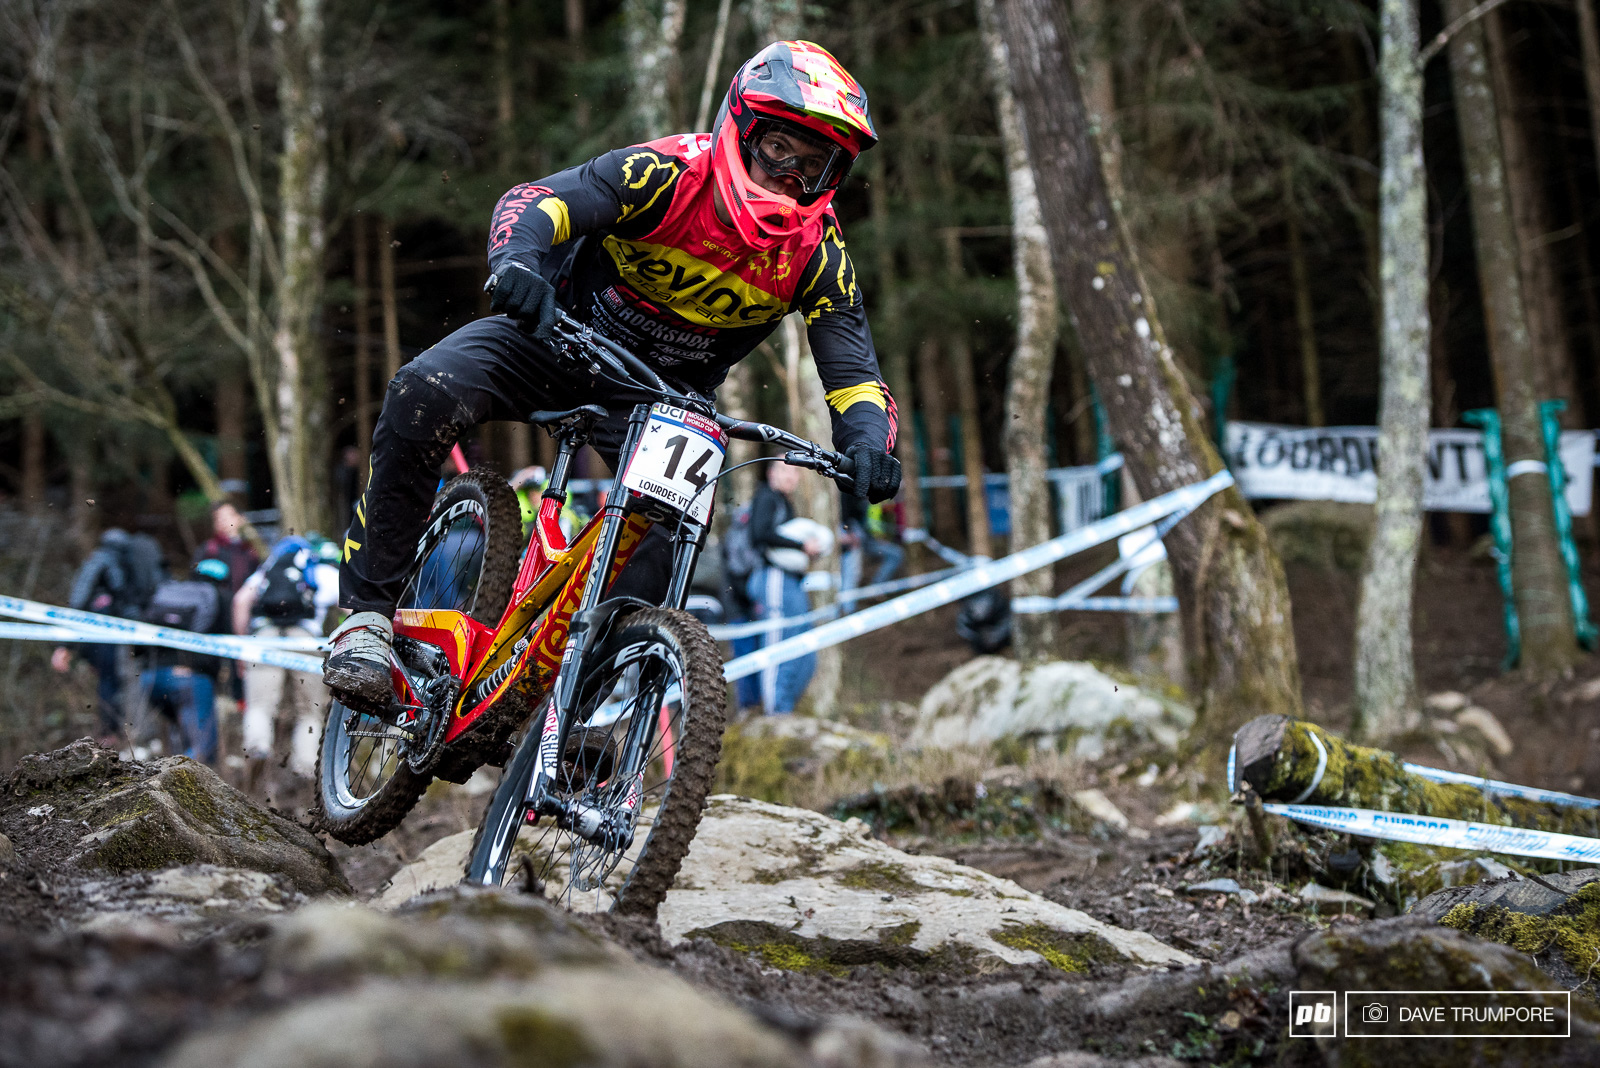 Devinci had an excellent showing with Stevie in second and Mark Wallace in 8th